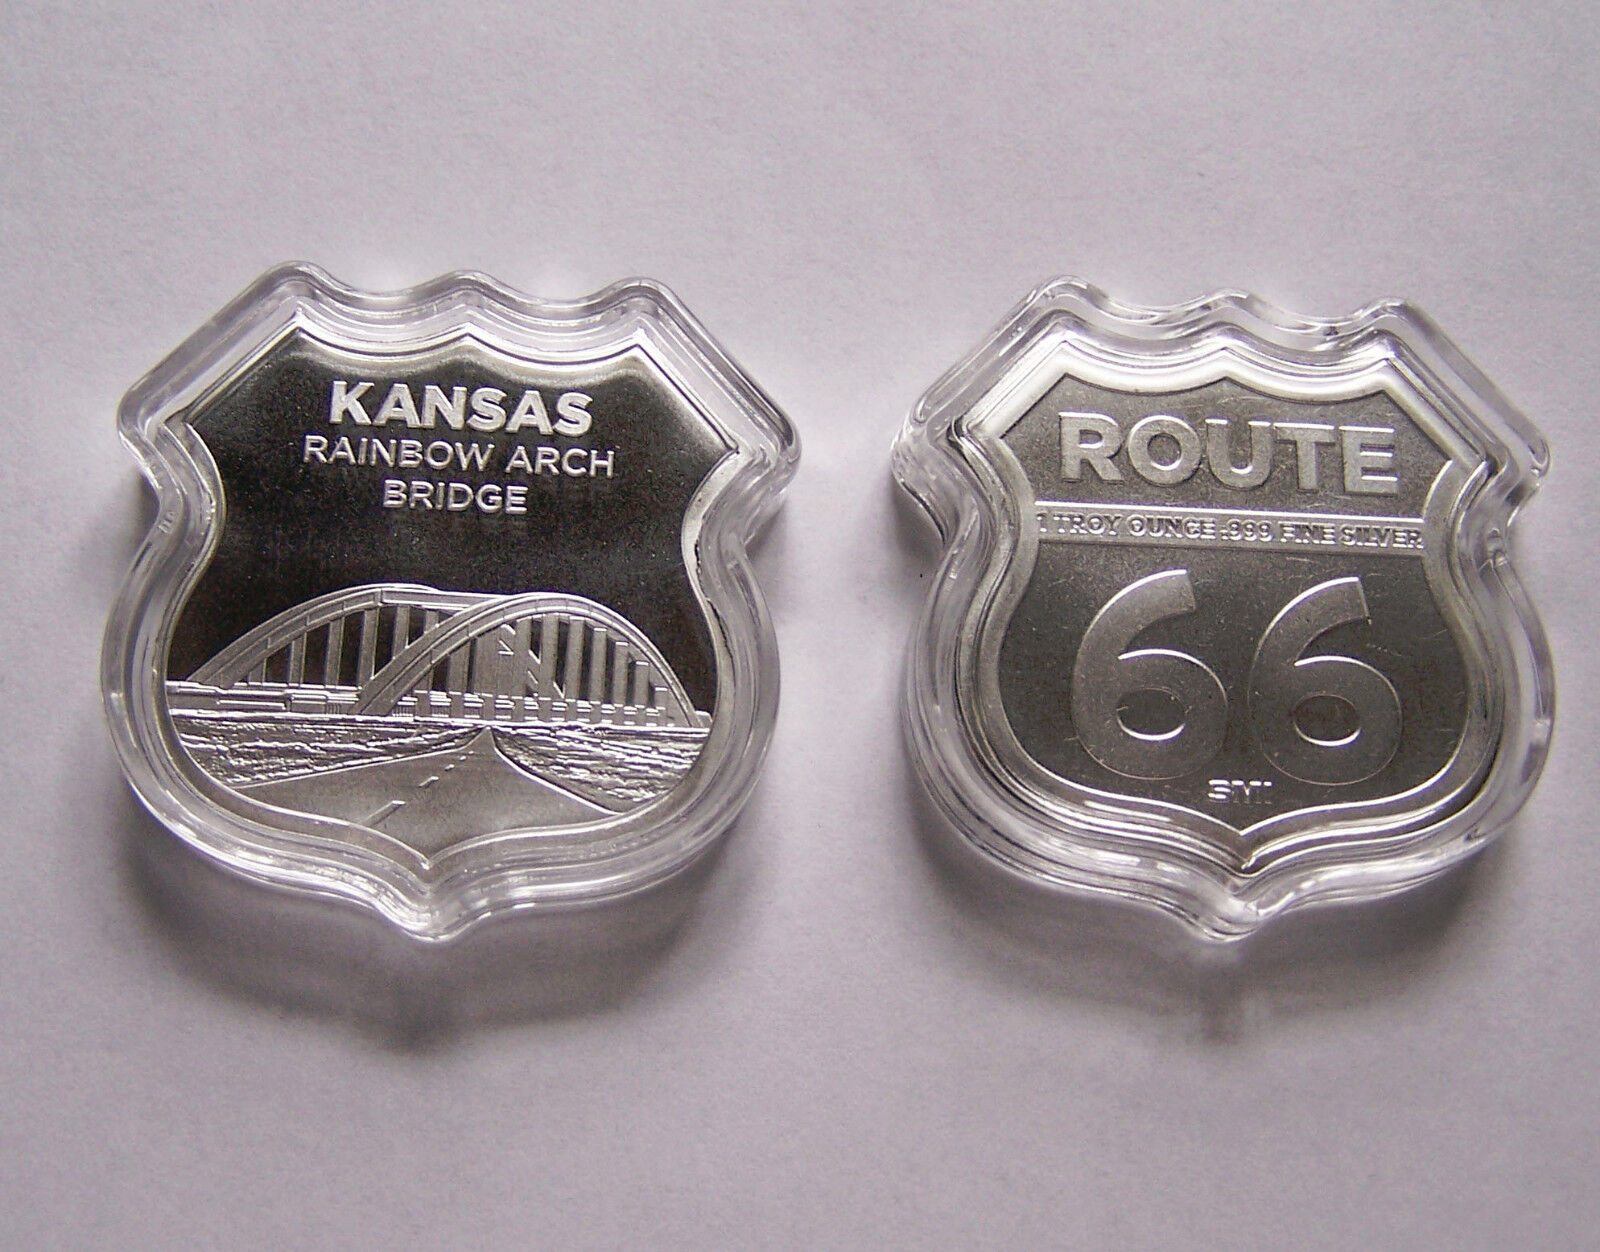 1 oz Silver Route 66 Shield - Kansas Rainbow Arch Bridge